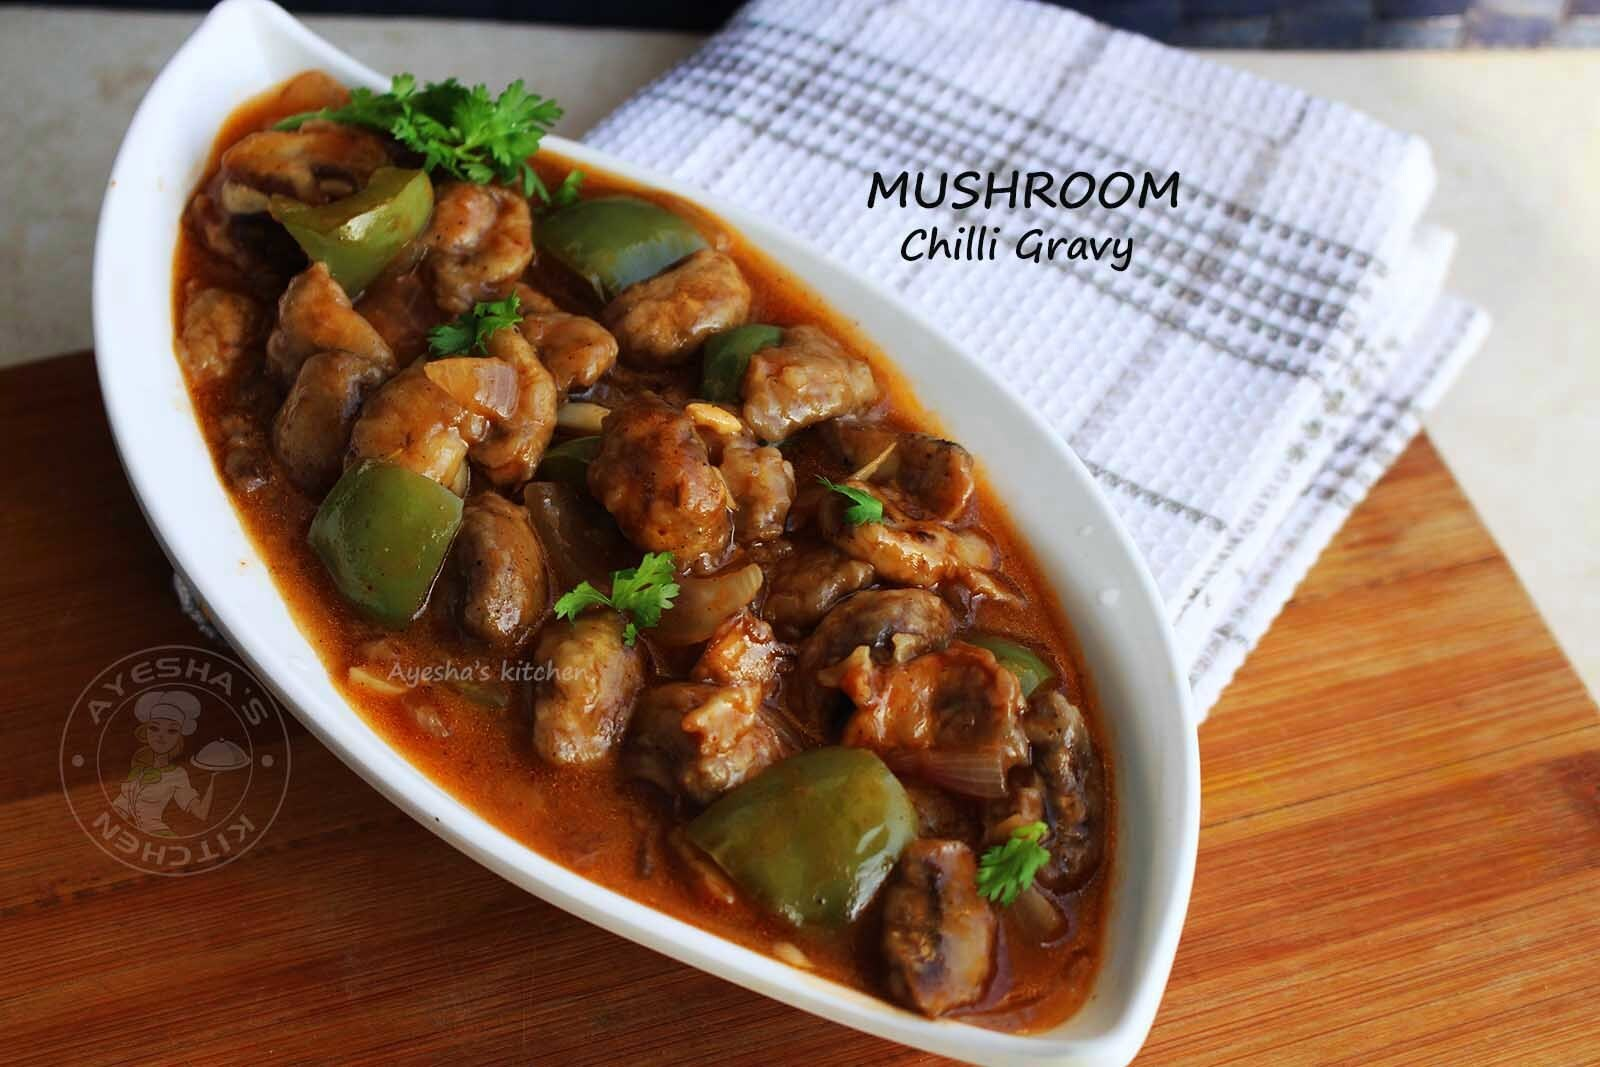 MUSHROOM RECIPES - MUSHROOM CHILLI GRAVY RECIPE